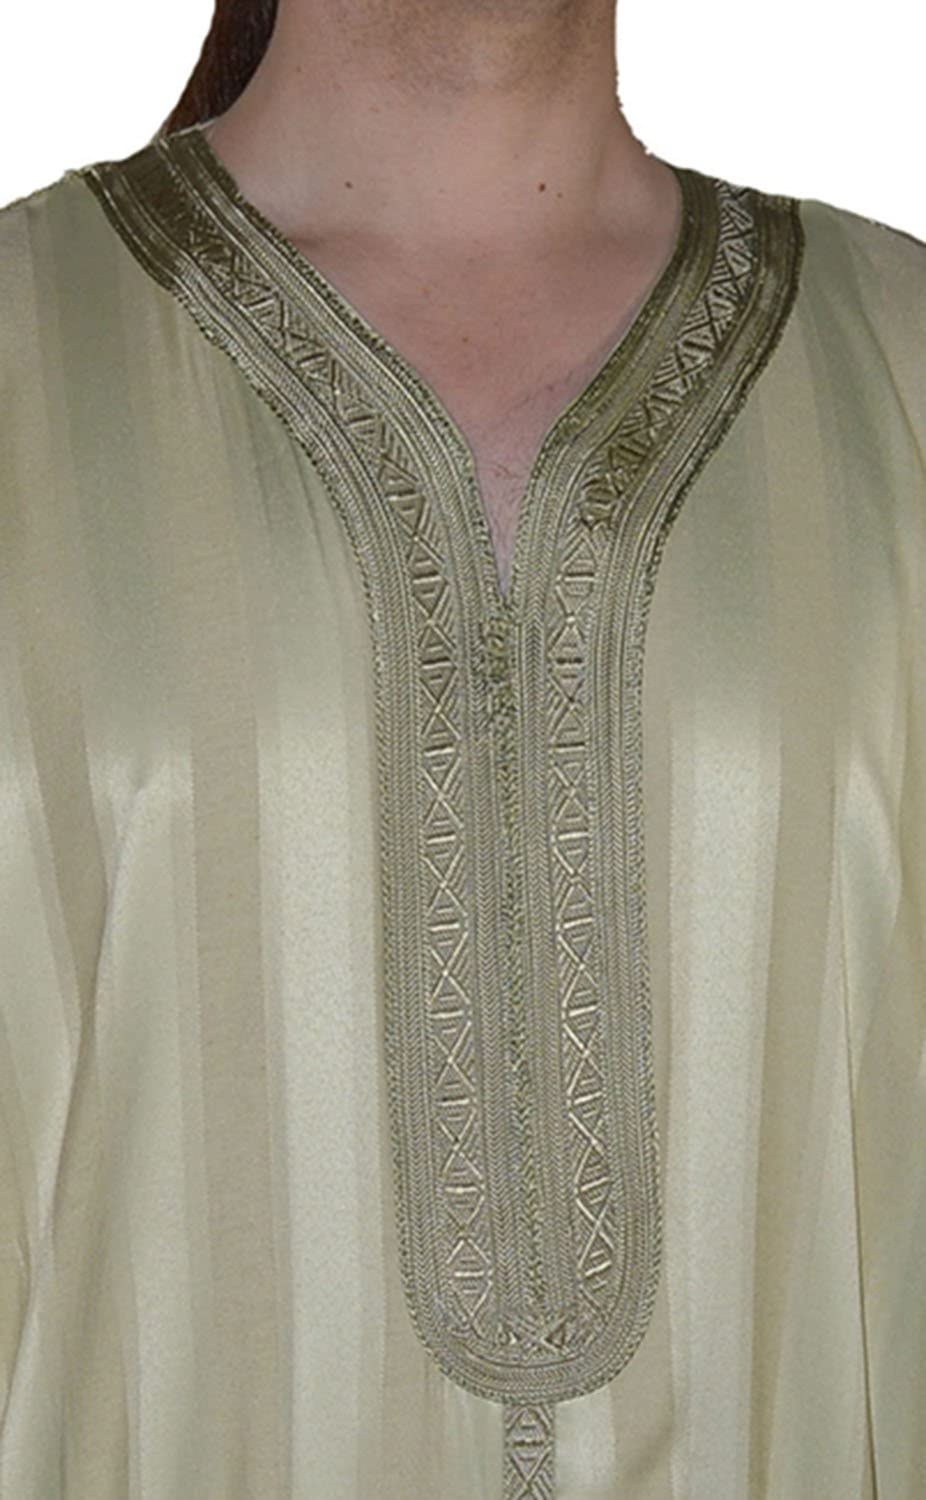 Moroccan Men Clothing handmade Caftan Gandoura With Tread Embroidery One Size